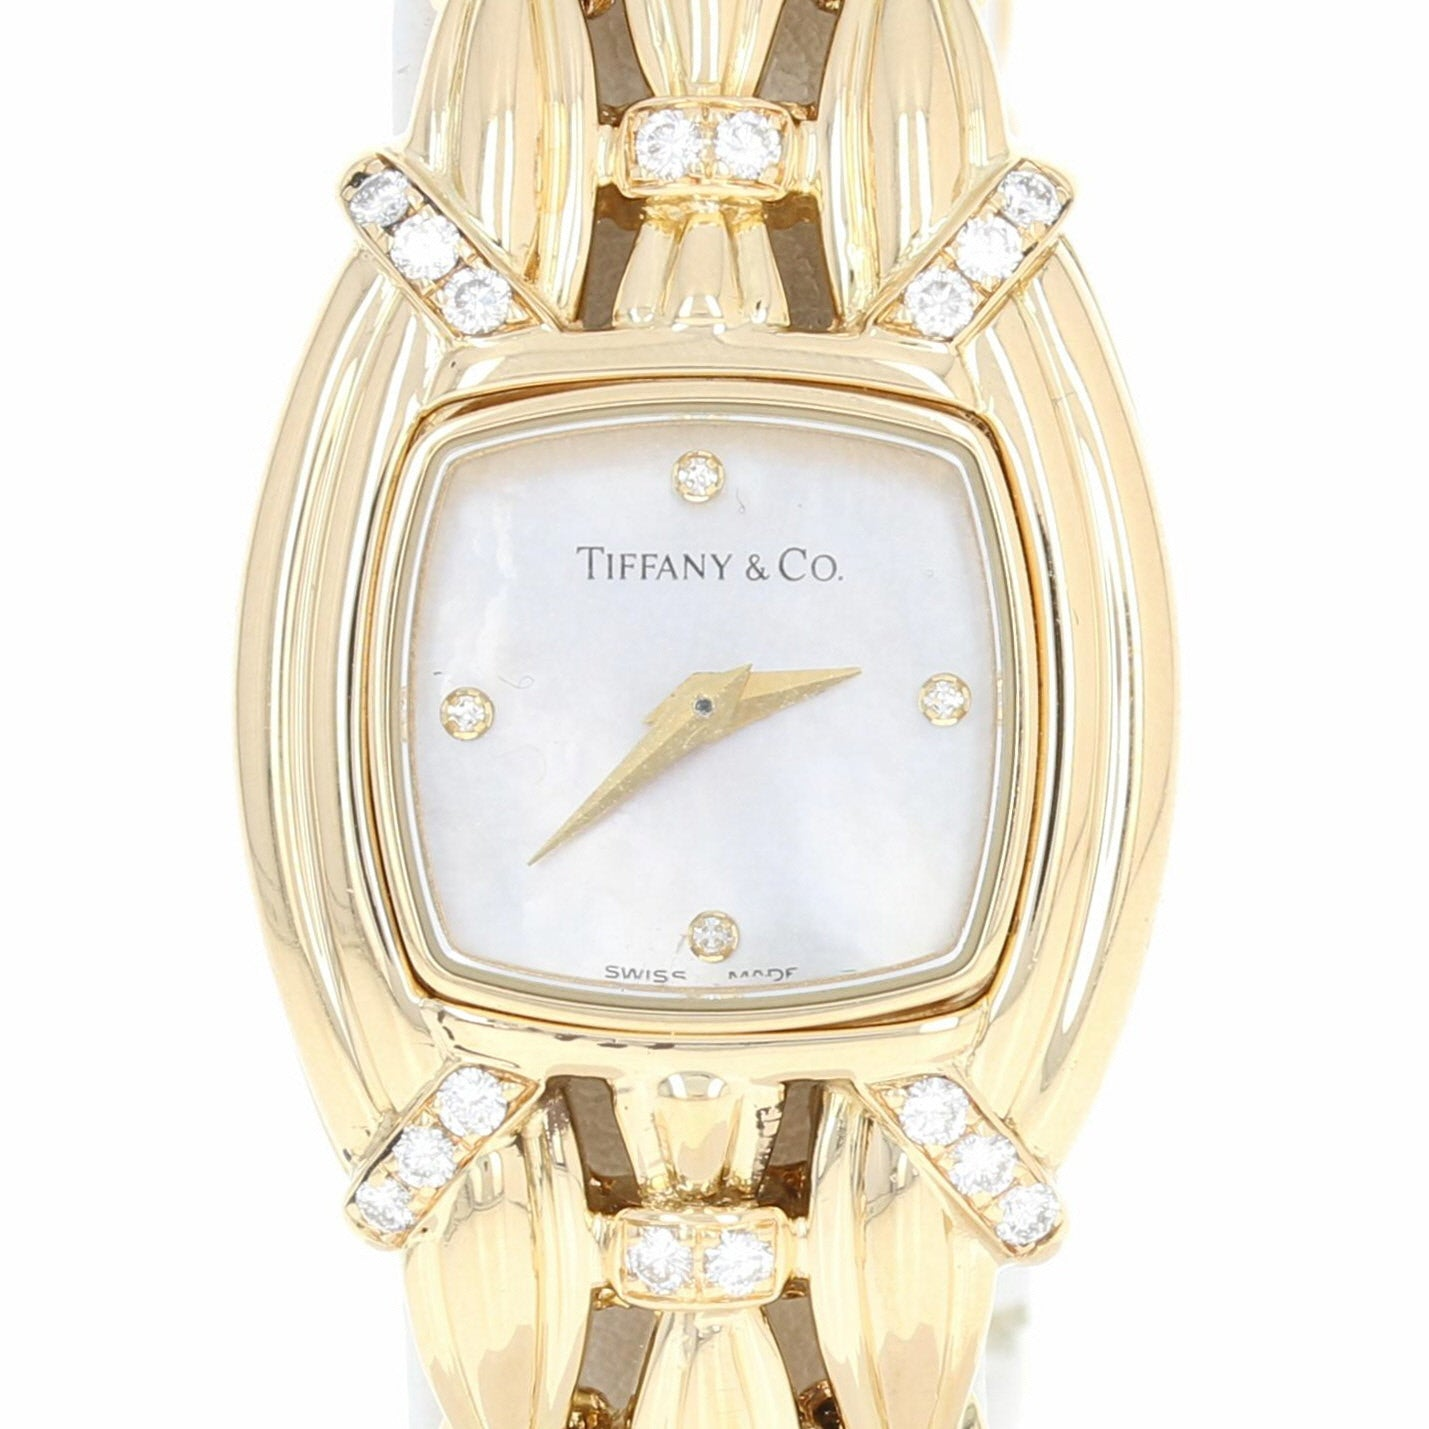 Tiffany & Co. Ladies Diamond Quartz Watch